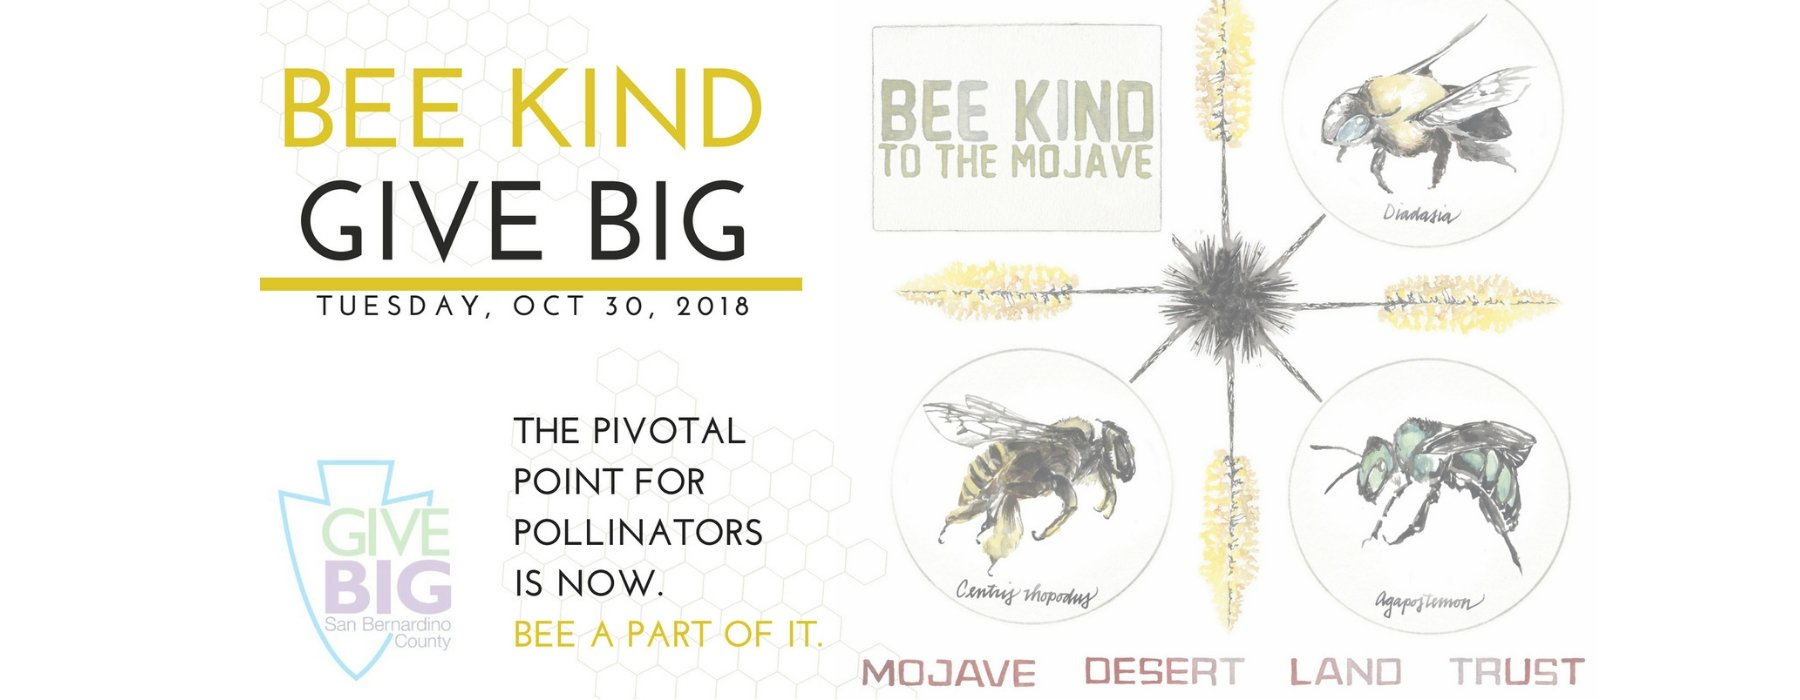 A photo of the Give Big 2018 Bee Kind Logo